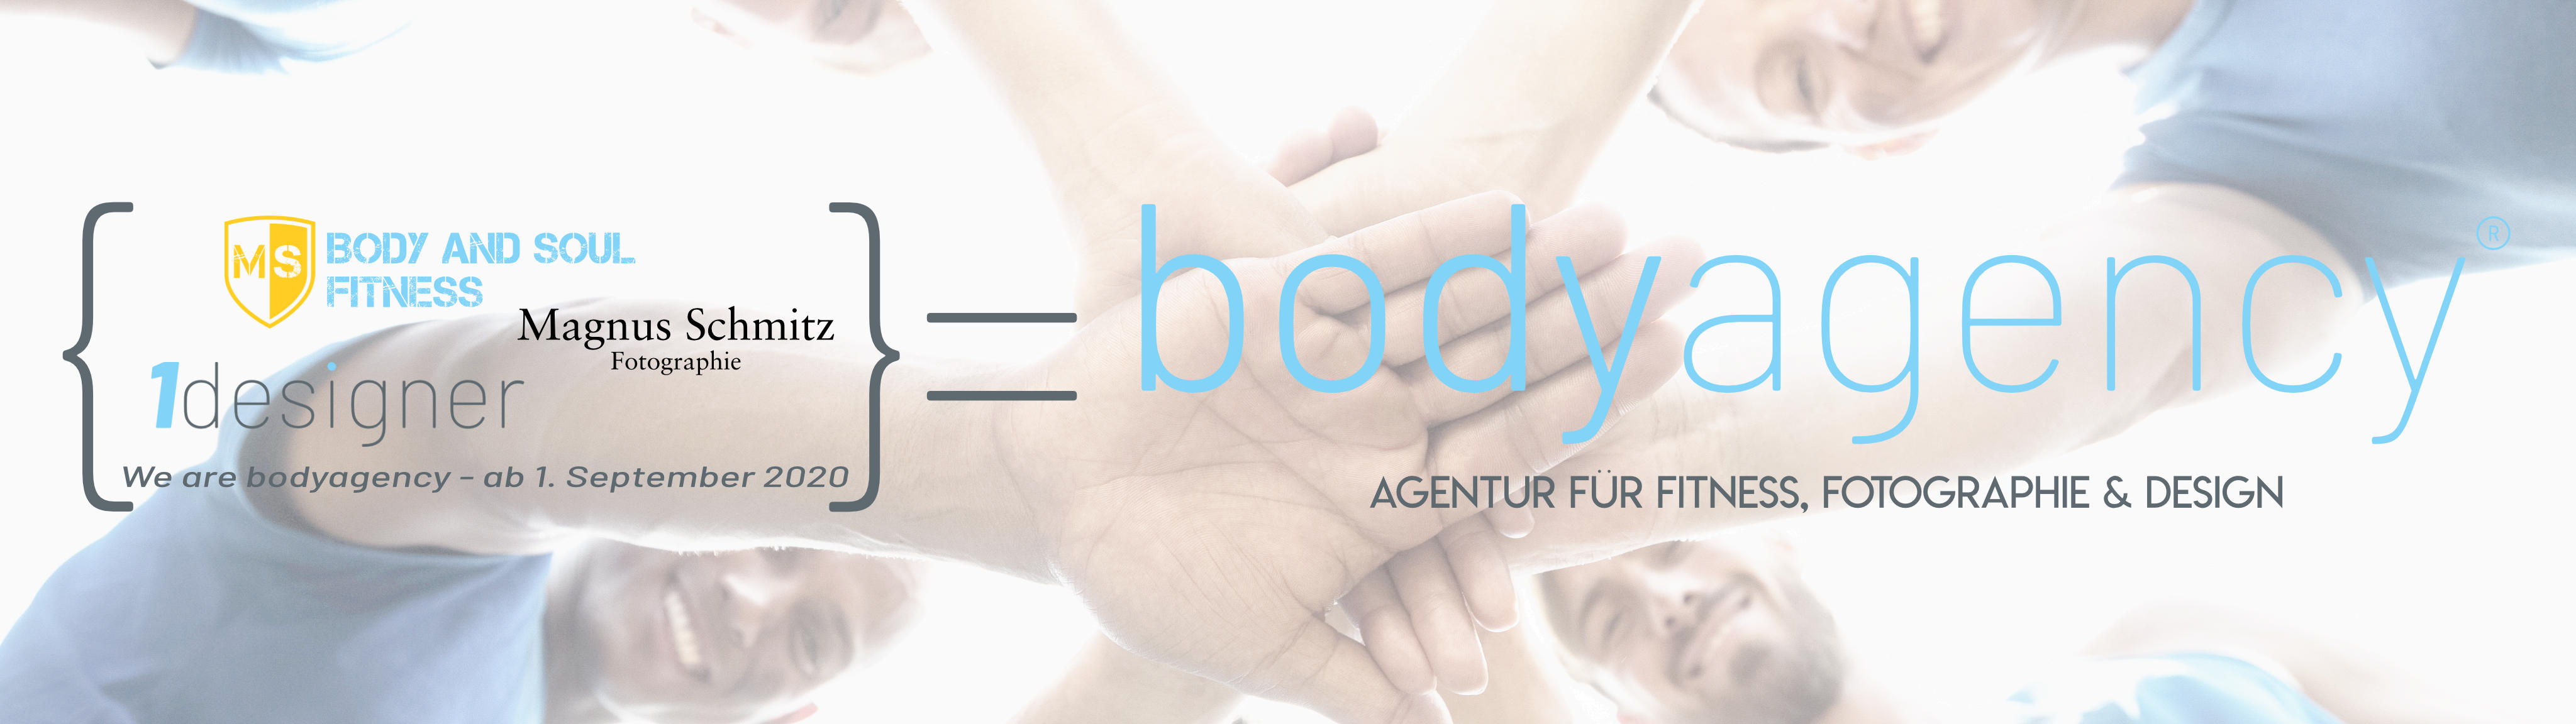 We are bodyagency